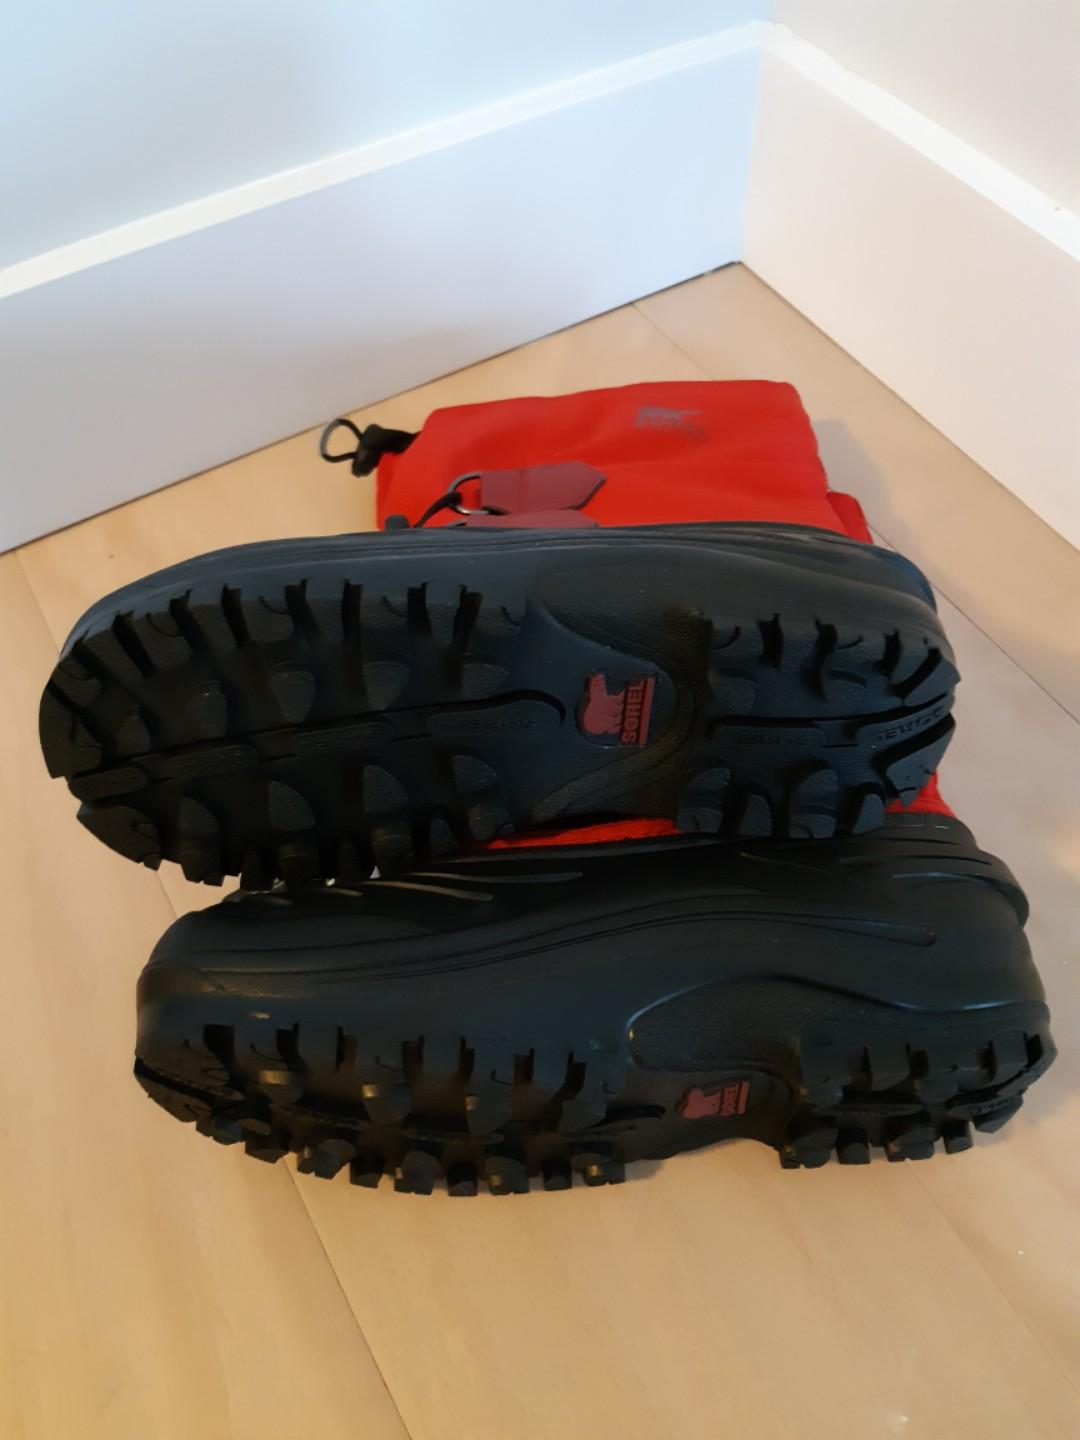 BRAND NEW Sorel Winter / Snow Boots - Size 3 Youth